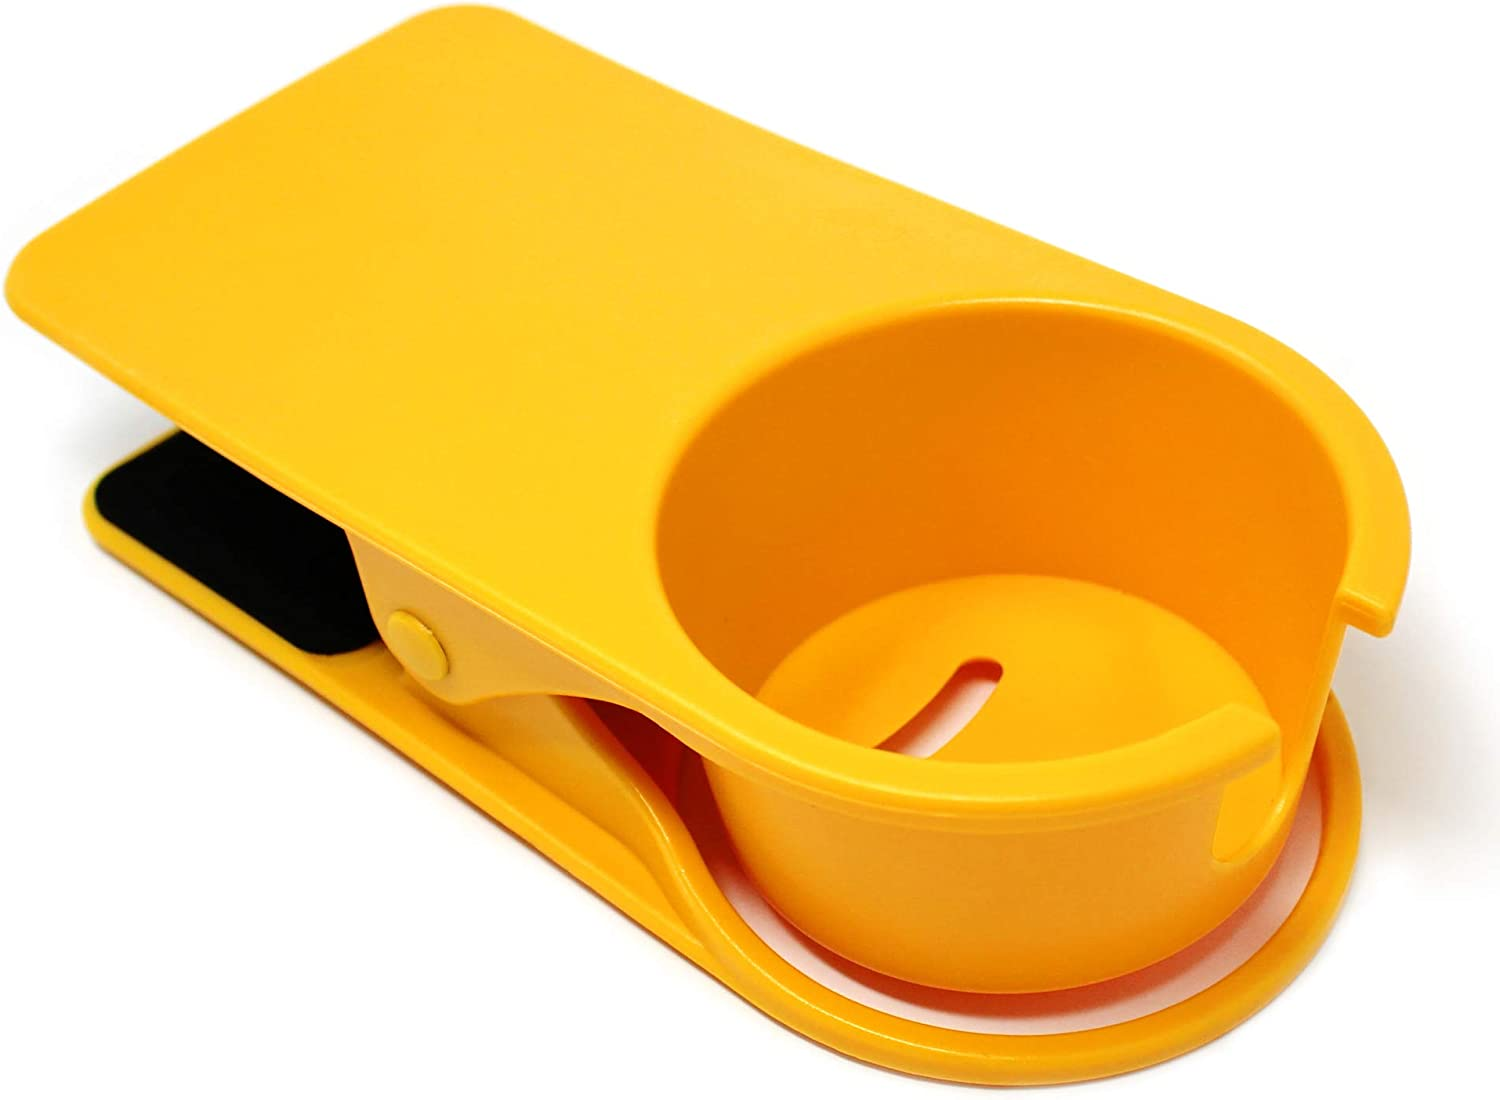 Sometheme Special Cup Holder Clip for Home Office Table Desk Edge Coffee Mug Holder Portable Cupholder Caddy Clamp (Yellow)